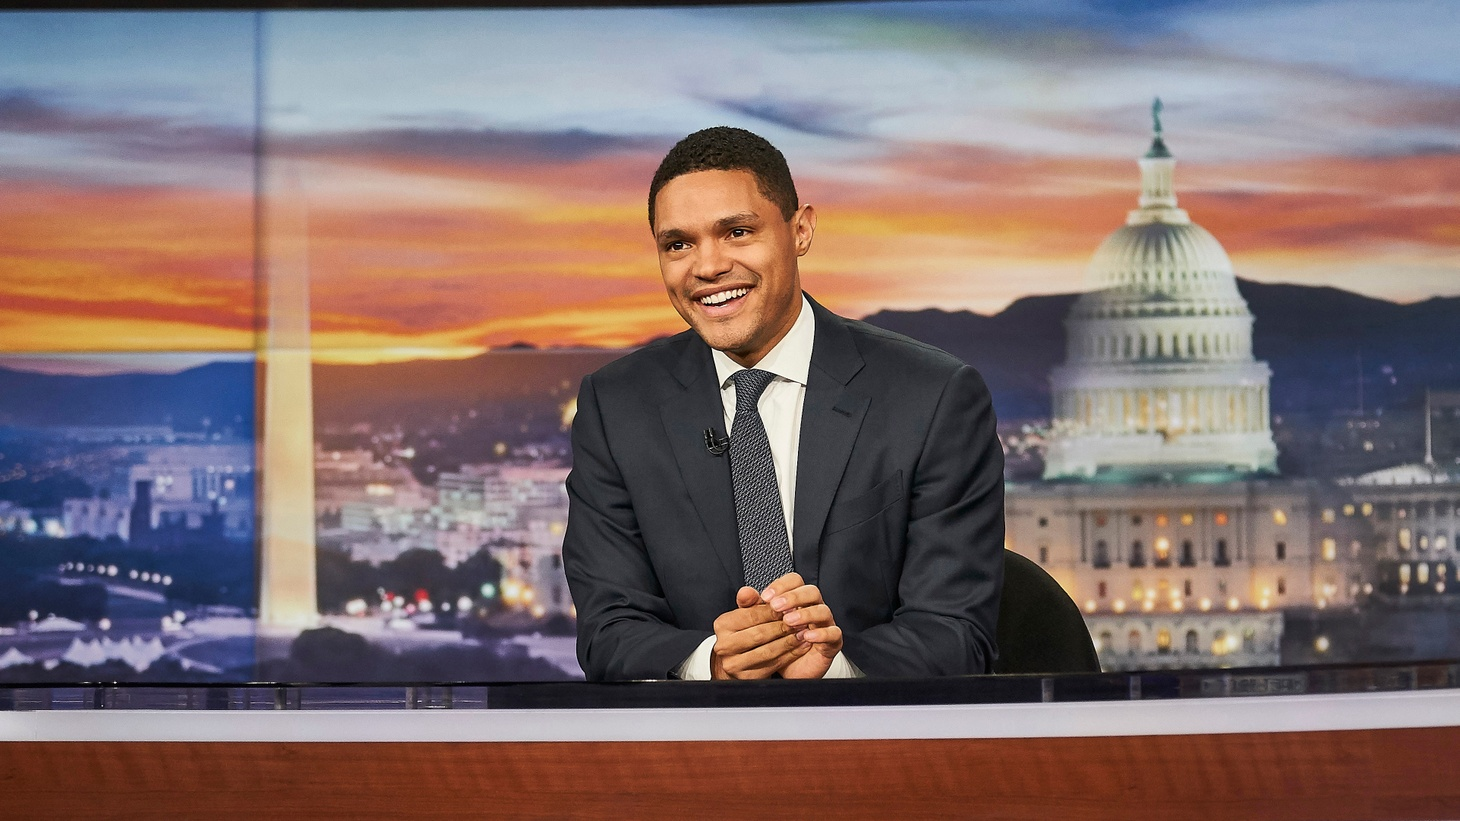 On Tuesday night, Trevor Noah spoke to Omarosa Manigault Newman, who's been on the TV circuit promoting her anti-Donald Trump book. Trevor Noah has hosted The Daily Show for nearly three years. Now he's nominated for an Emmy for the first time.